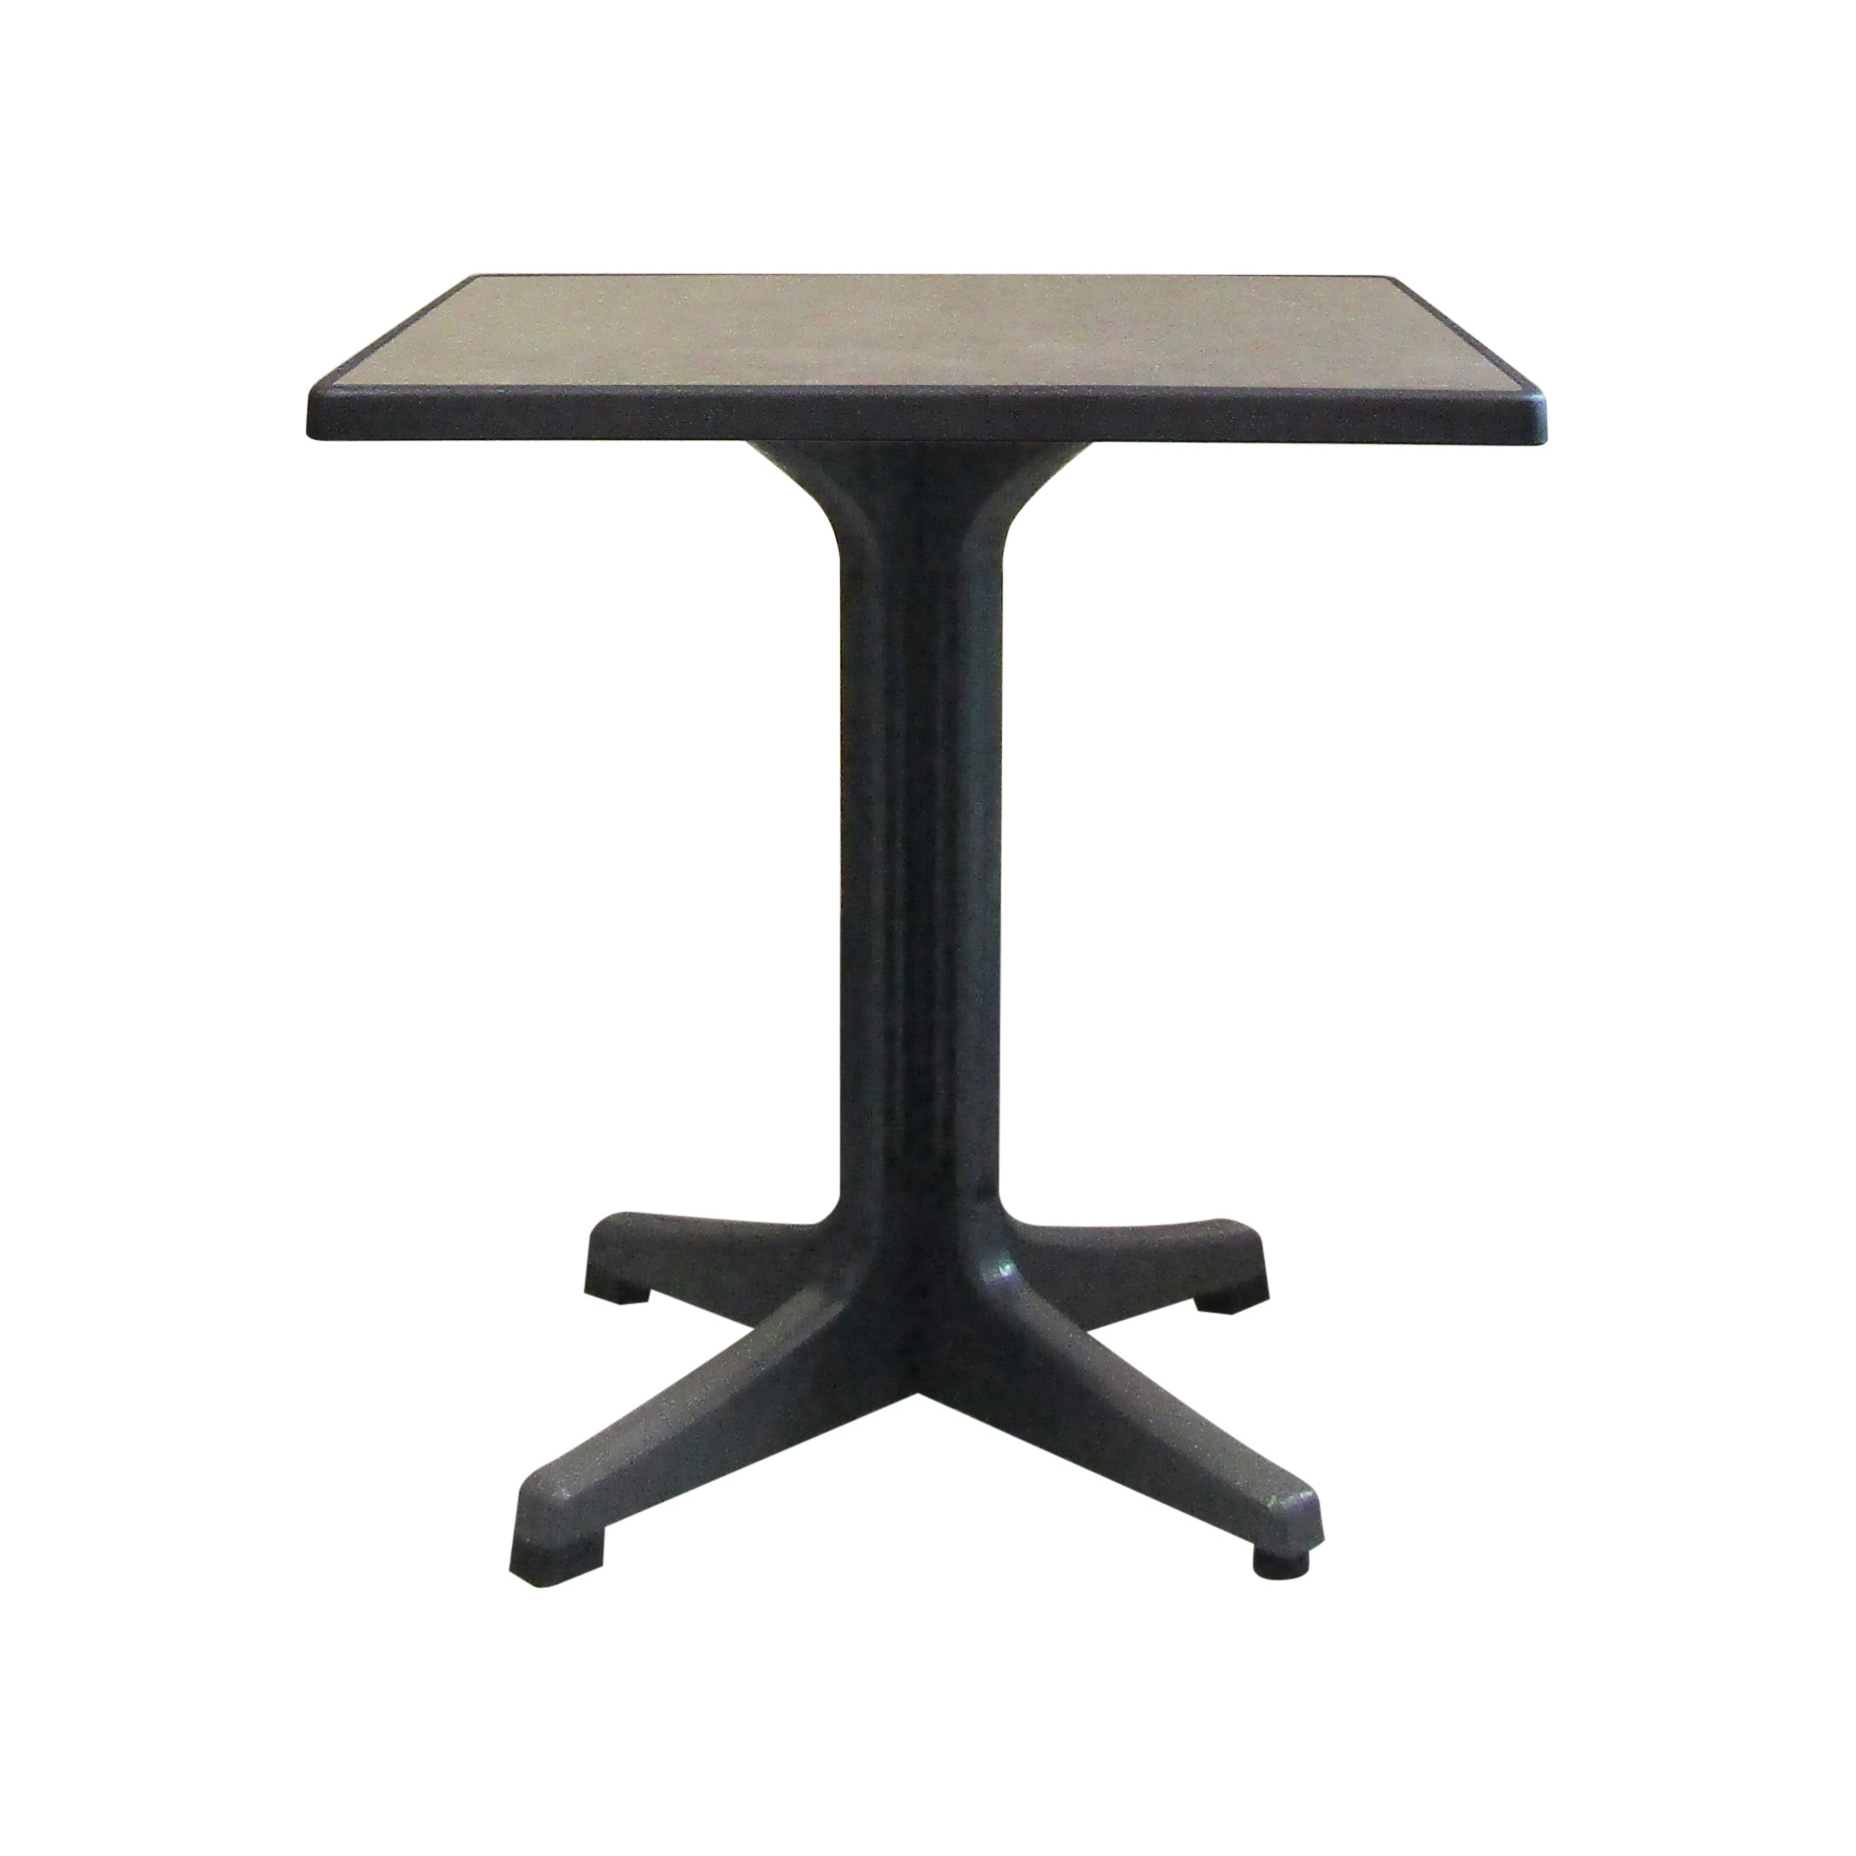 Grosfillex US285746 table, outdoor